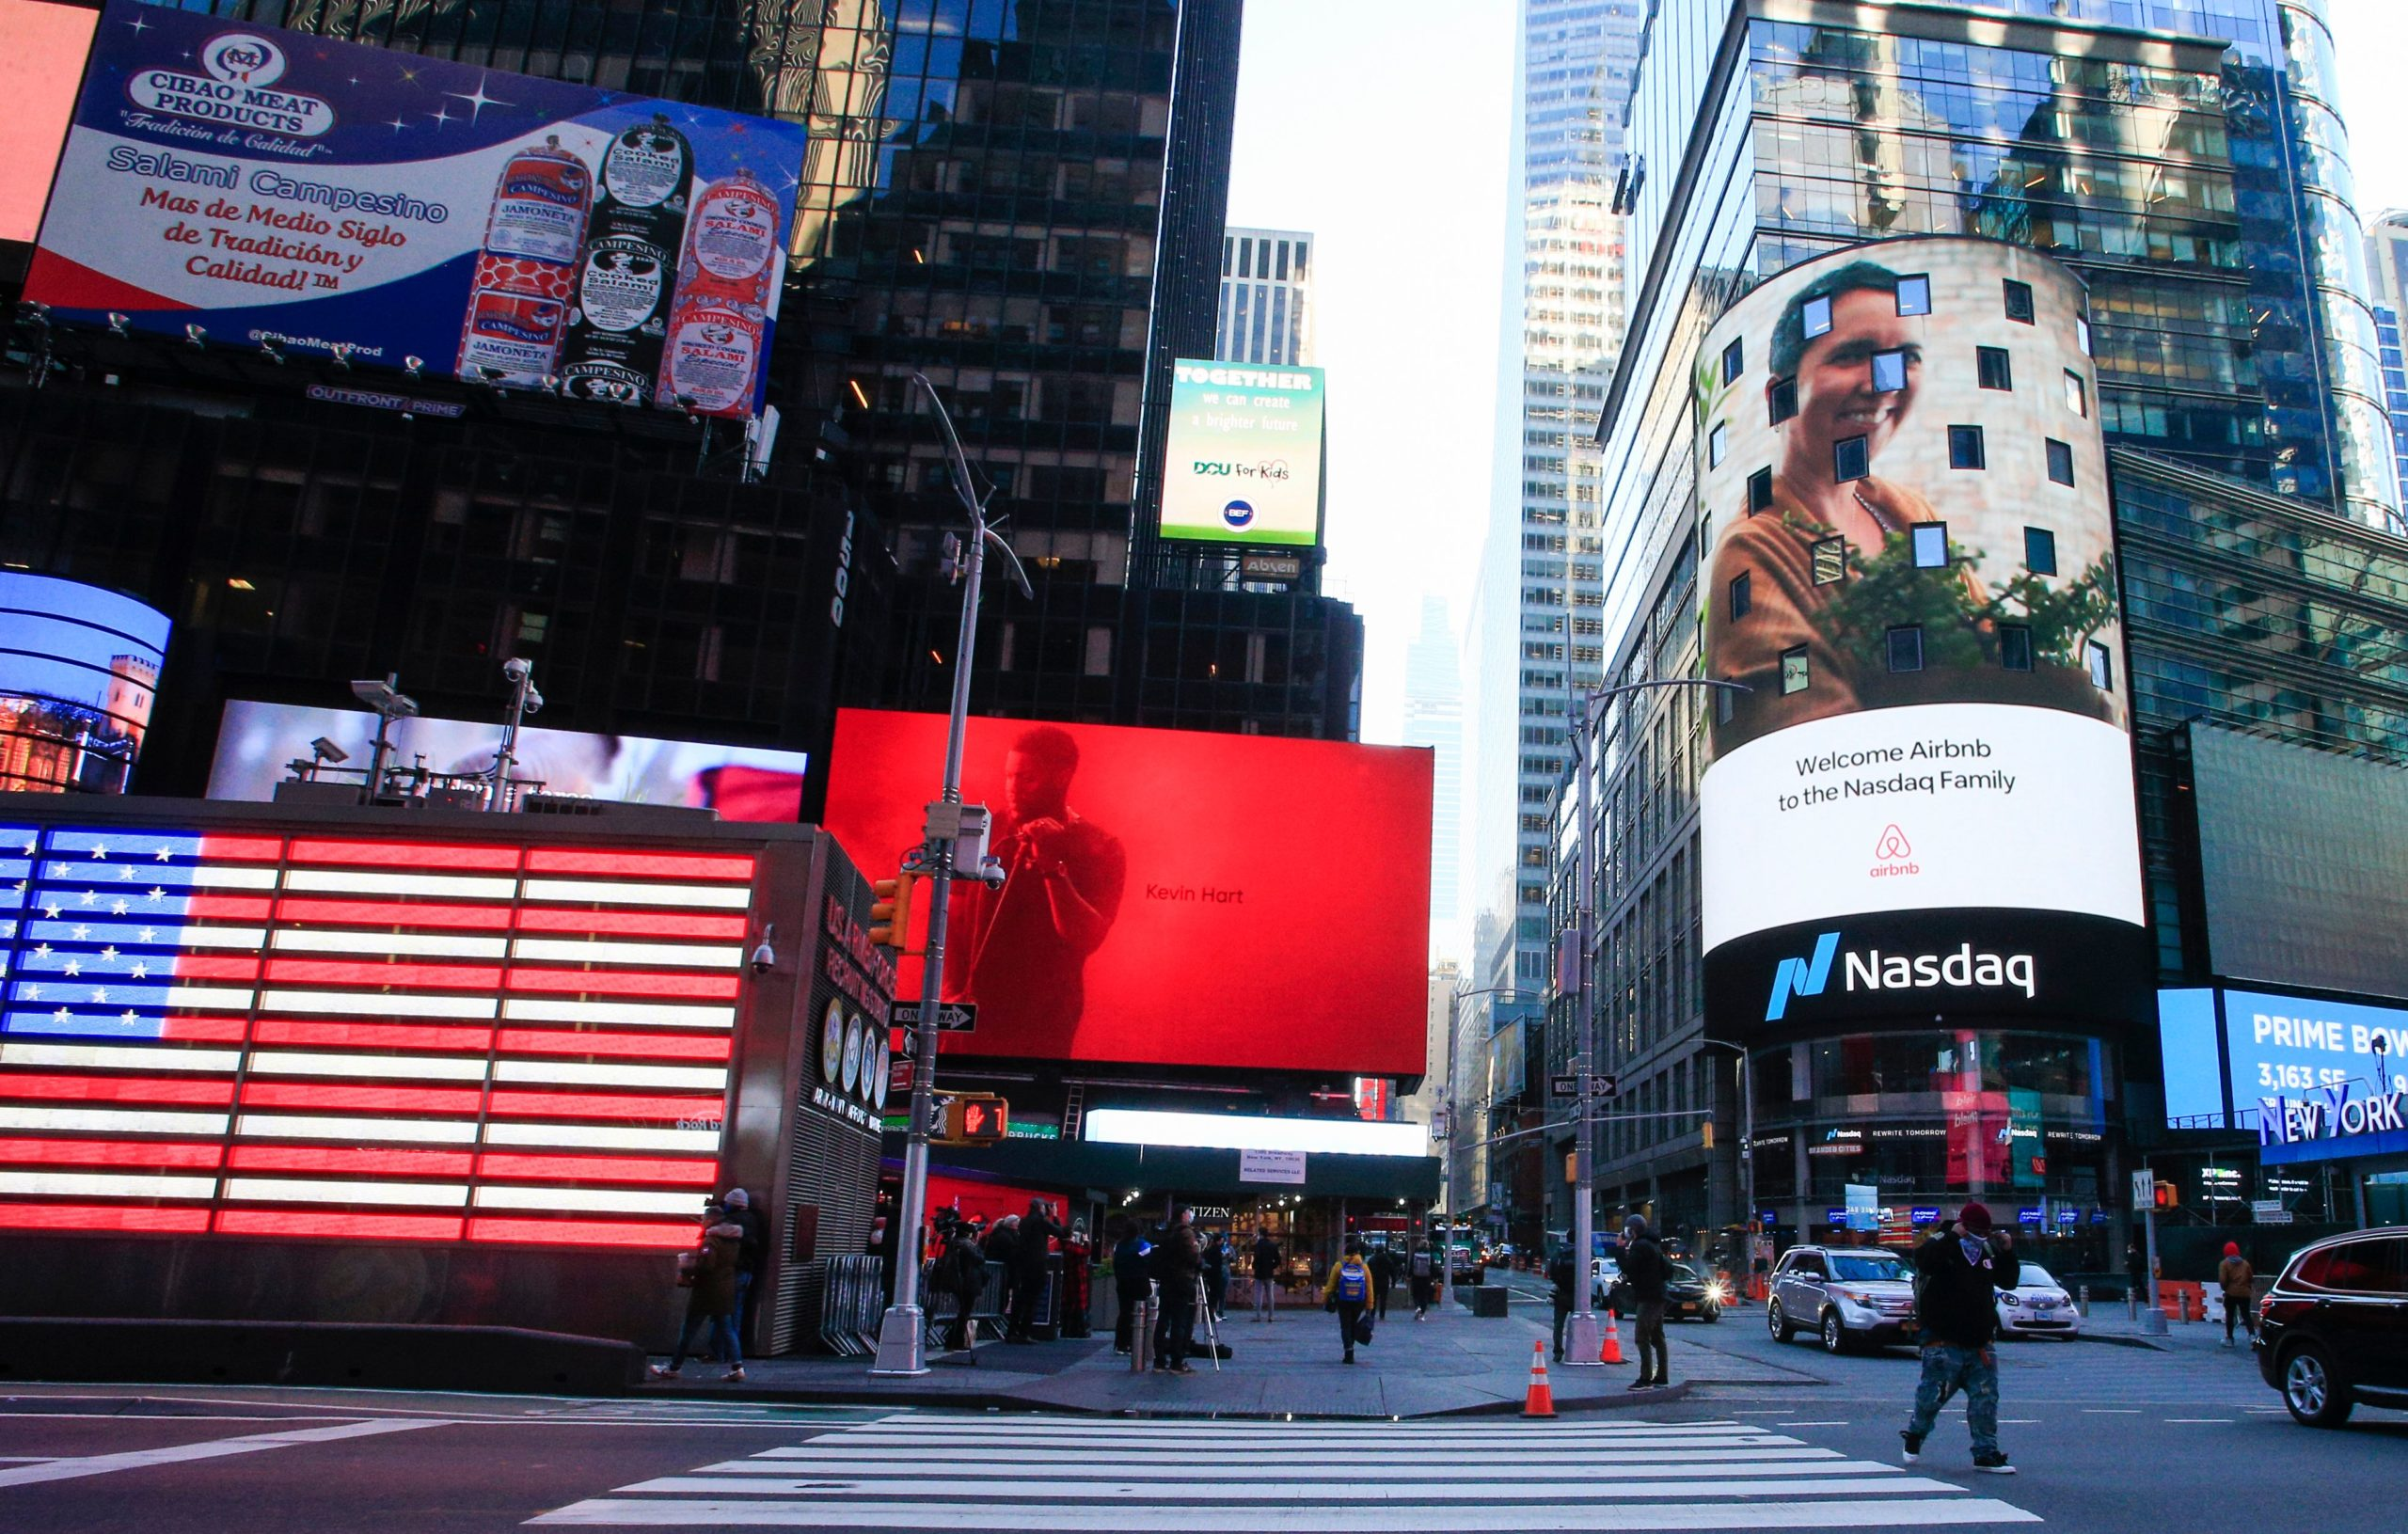 The Airbnb logo (R) is displayed on the Nasdaq digital billboard in Times Square in New York on December 10, 2020. - Home-sharing giant Airbnb was set for its Wall Street debut Thursday with a whopping $47 billion valuation amid a feverish rush for new shares in companies adapting to lifestyle changes imposed by the coronavirus pandemic. (Photo by Kena Betancur / AFP) (Photo by KENA BETANCUR/AFP via Getty Images)